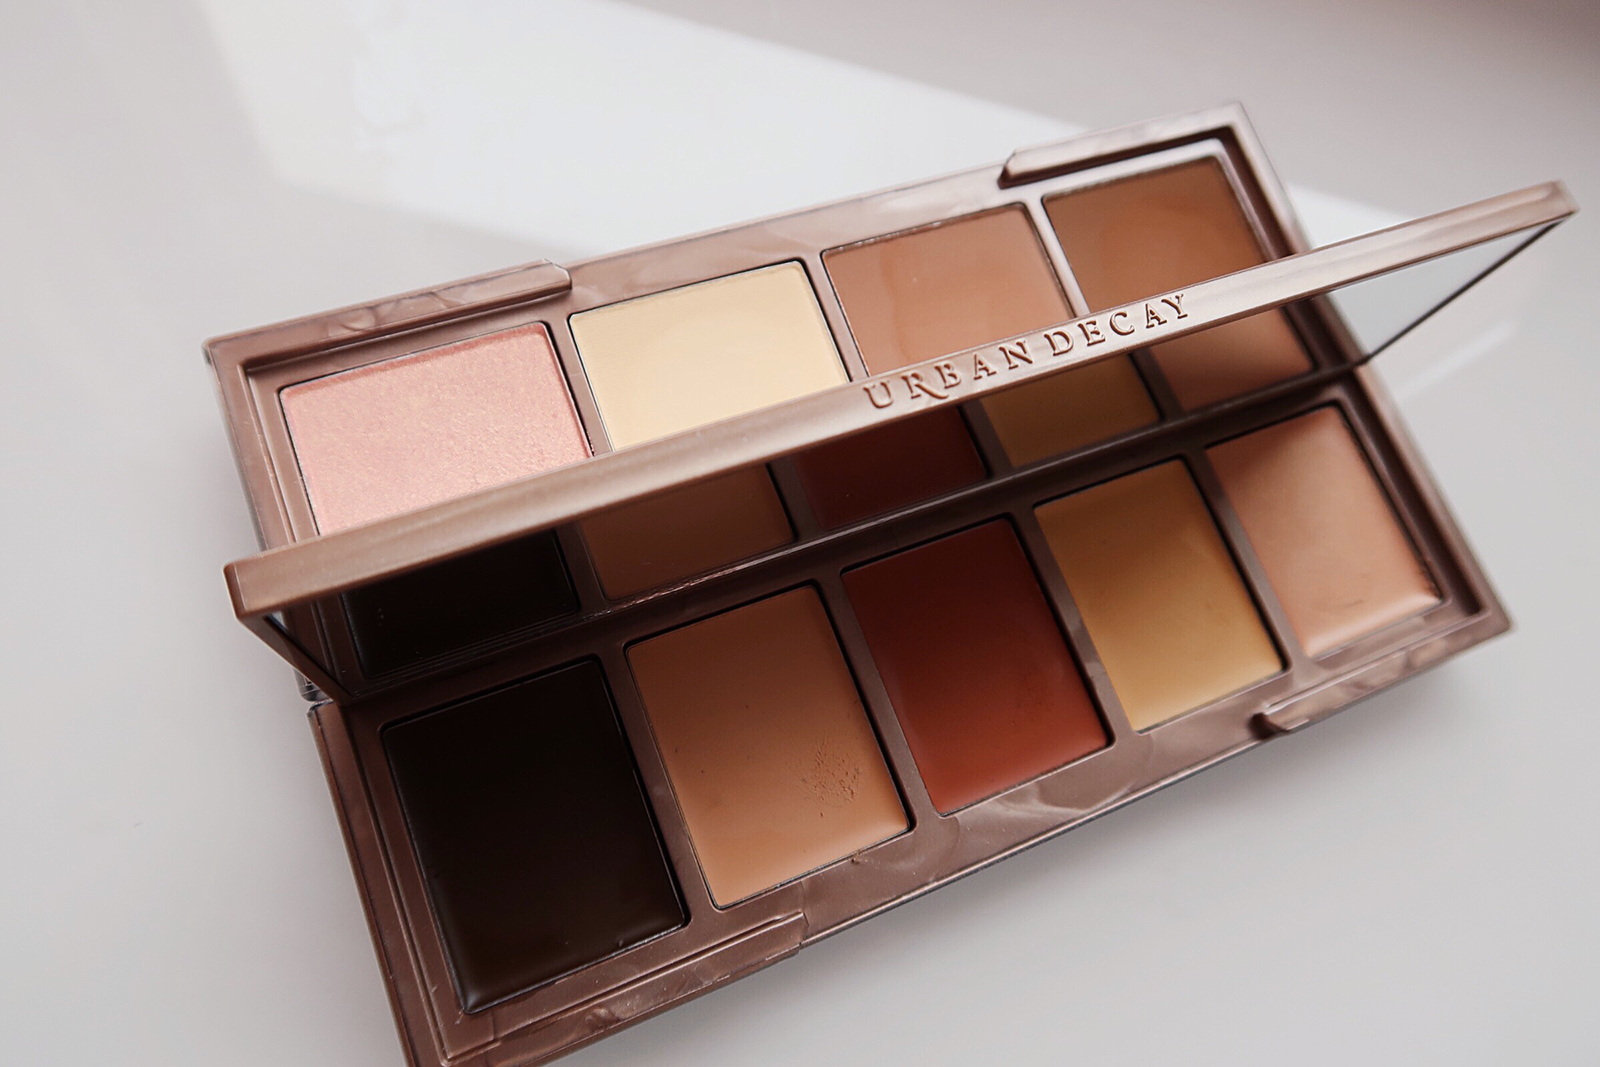 NAKED Shapeshifter Skin palette in medium by Urban Decay!